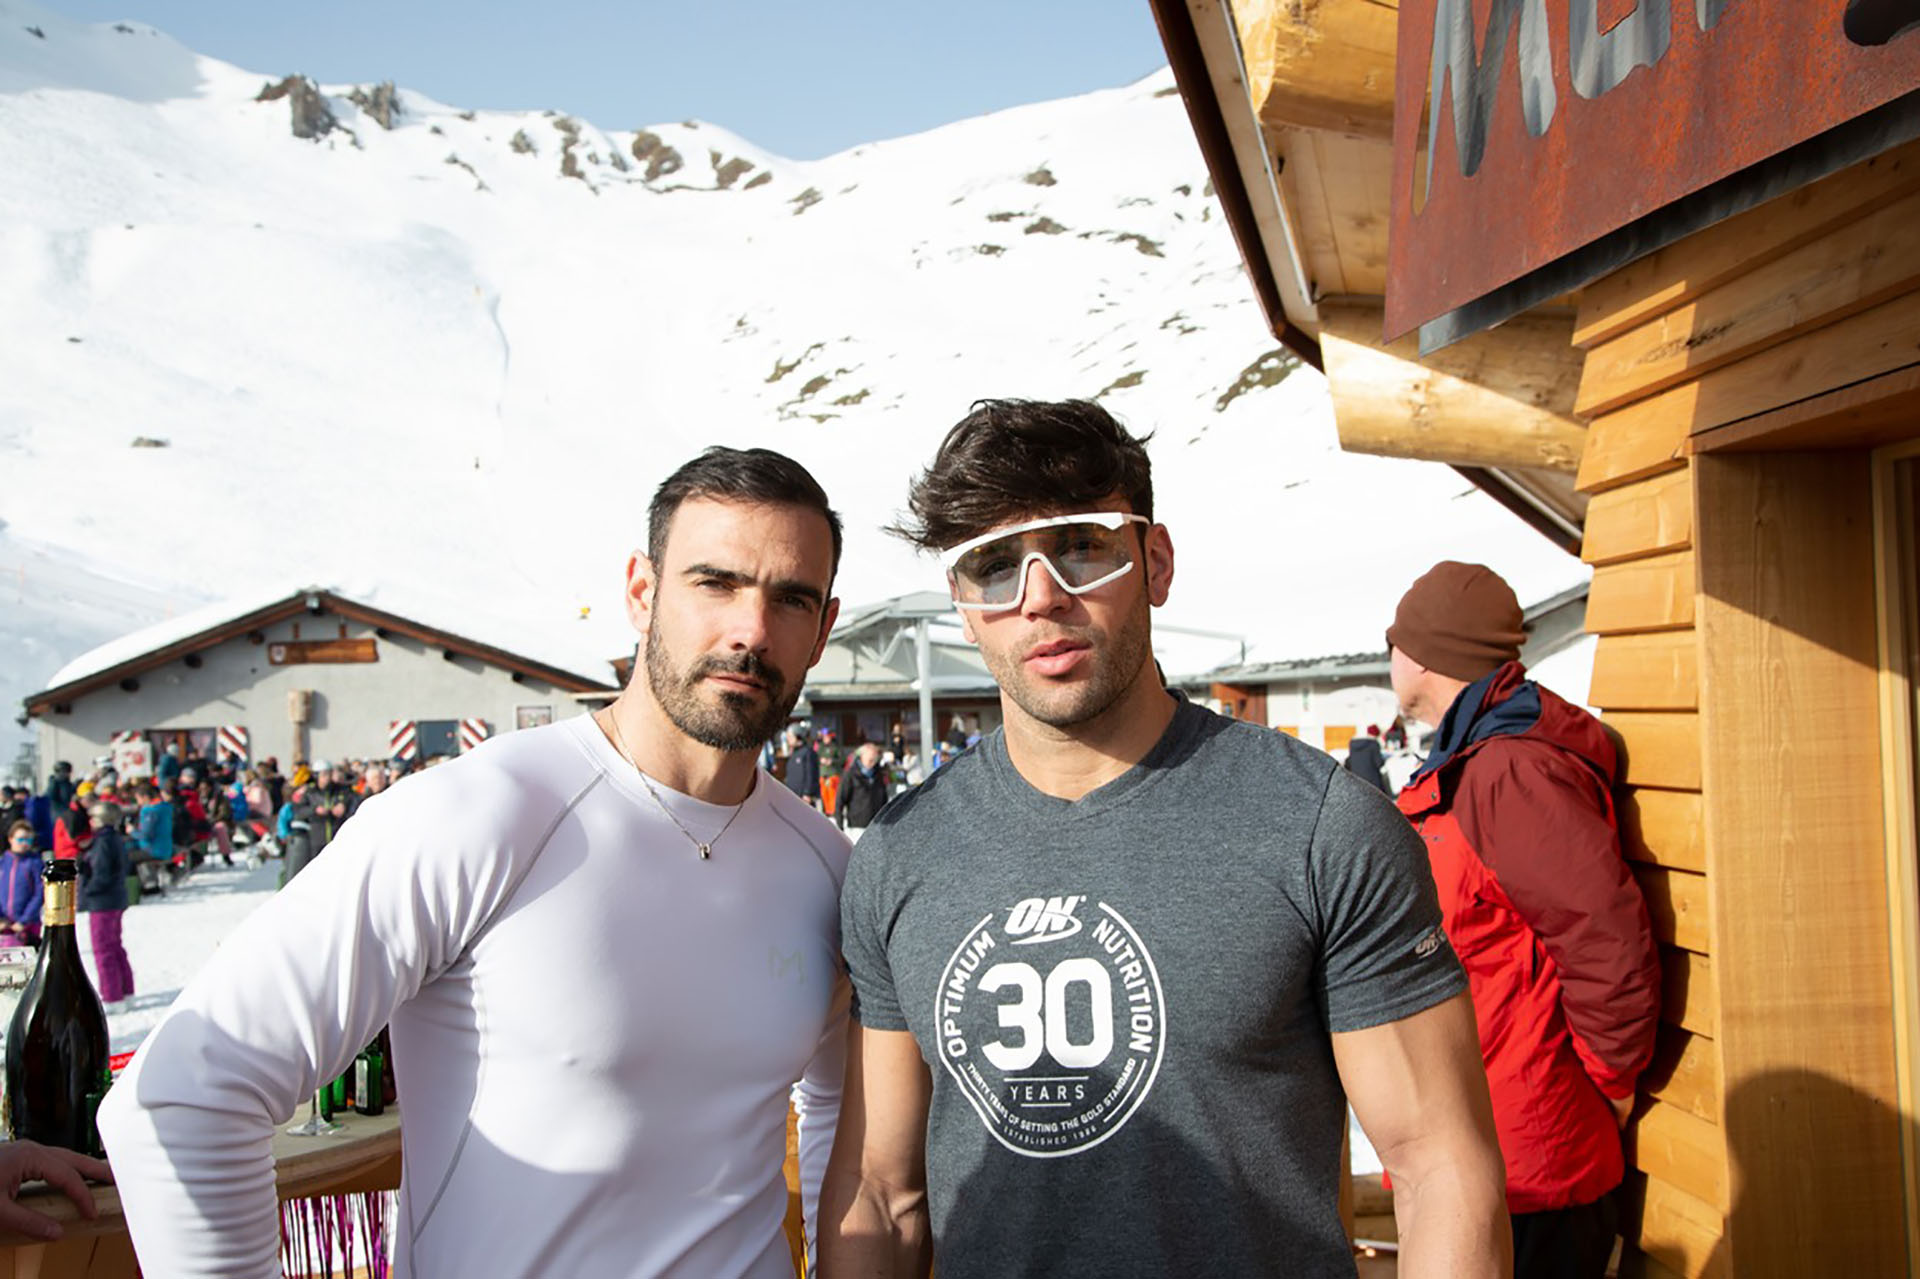 Arosa Gay Ski Week, Suisse